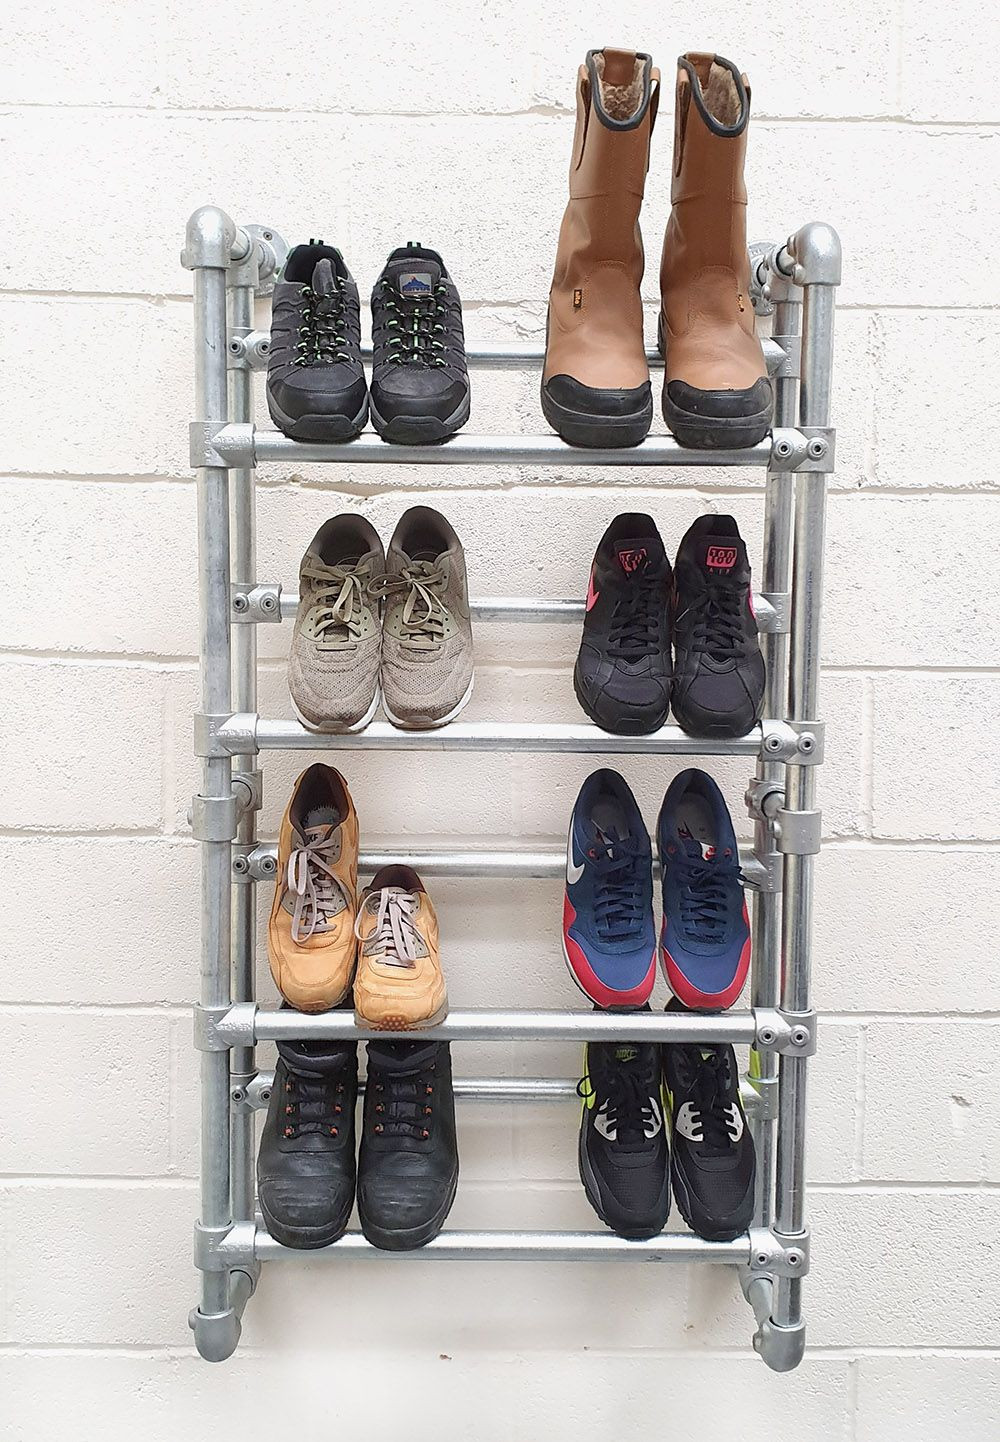 Industrial Heavy Duty Shoe Rack Wall Mounted Simplified Building